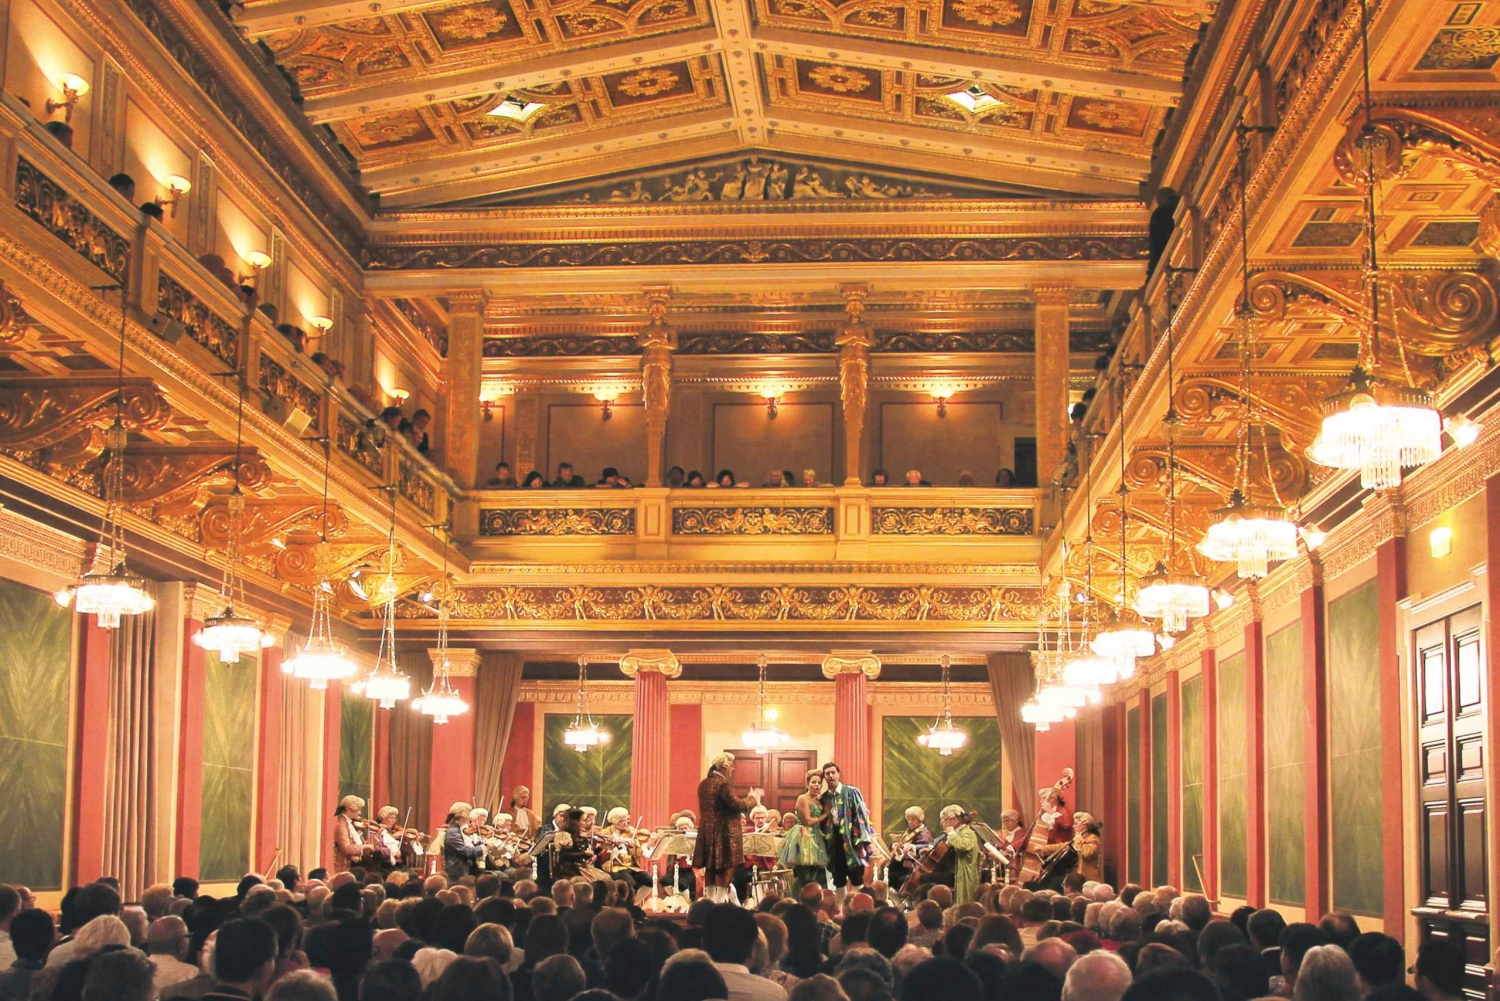 Vienna Orchestra: Mozart and Strauss in the Brahms-Saal